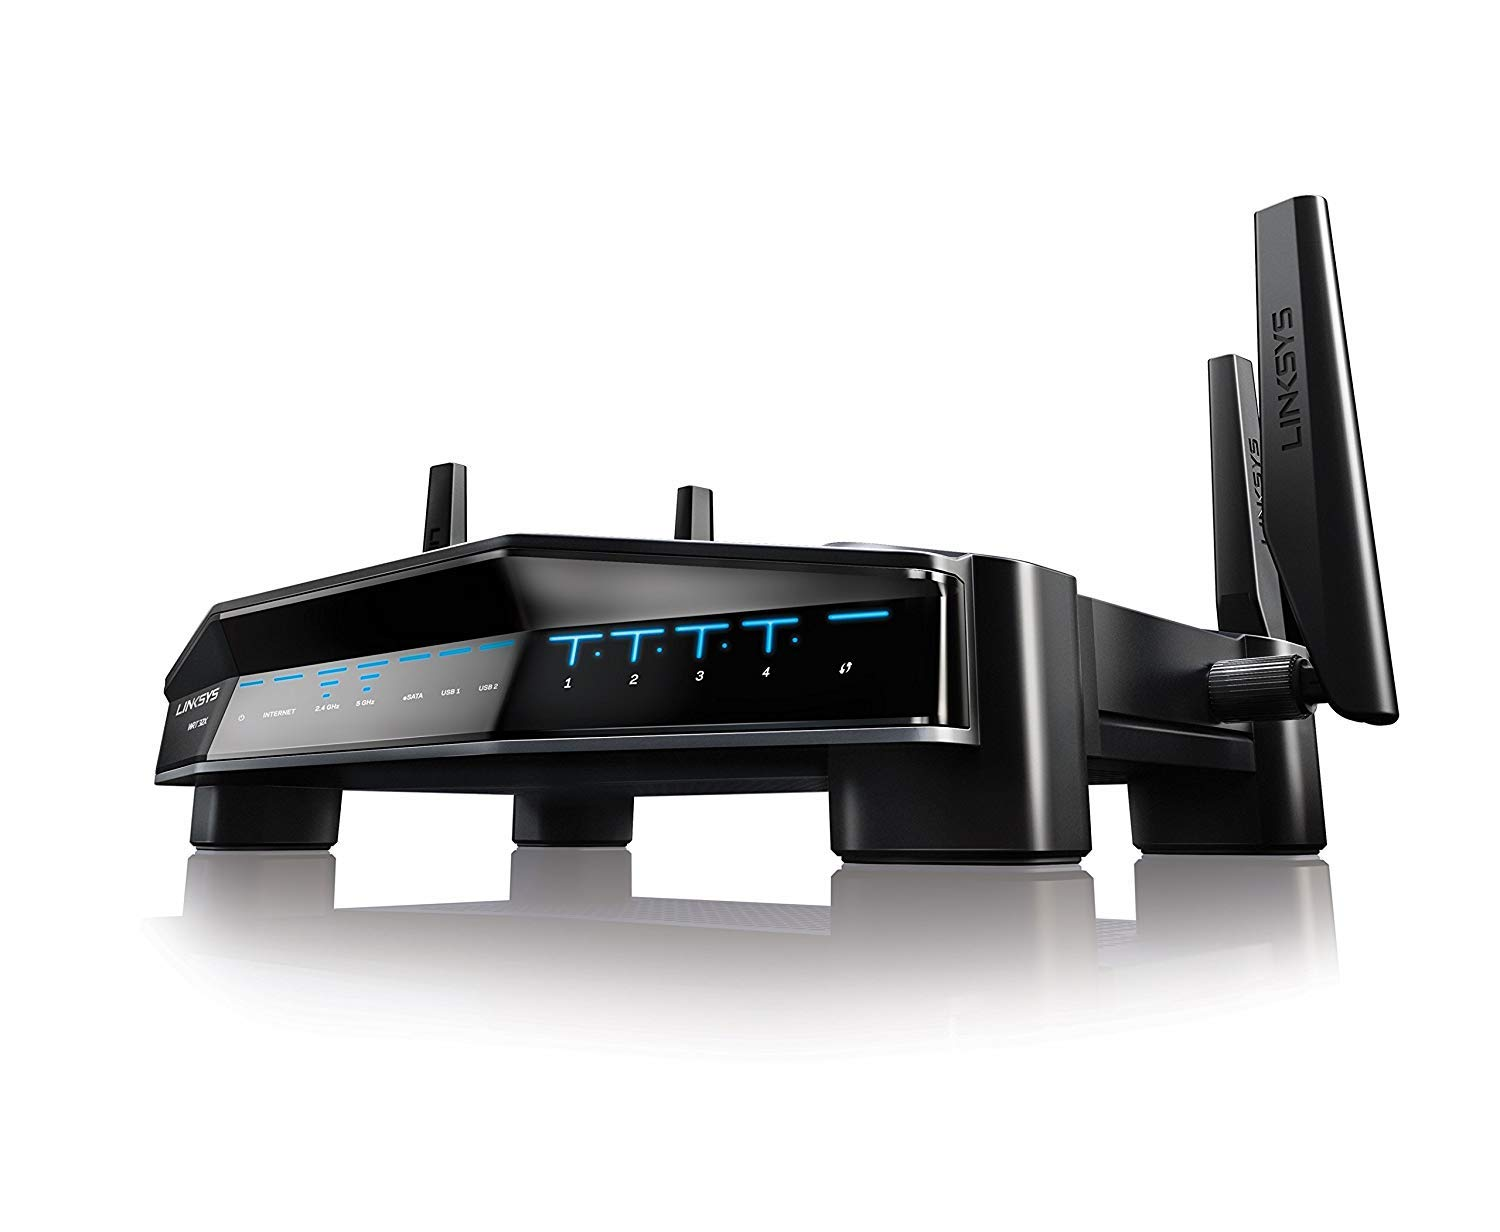 Linksys AC3200 Dual-Band WiFi Gaming Router with Killer Prioritization Engine (WRT32X) by Linksys